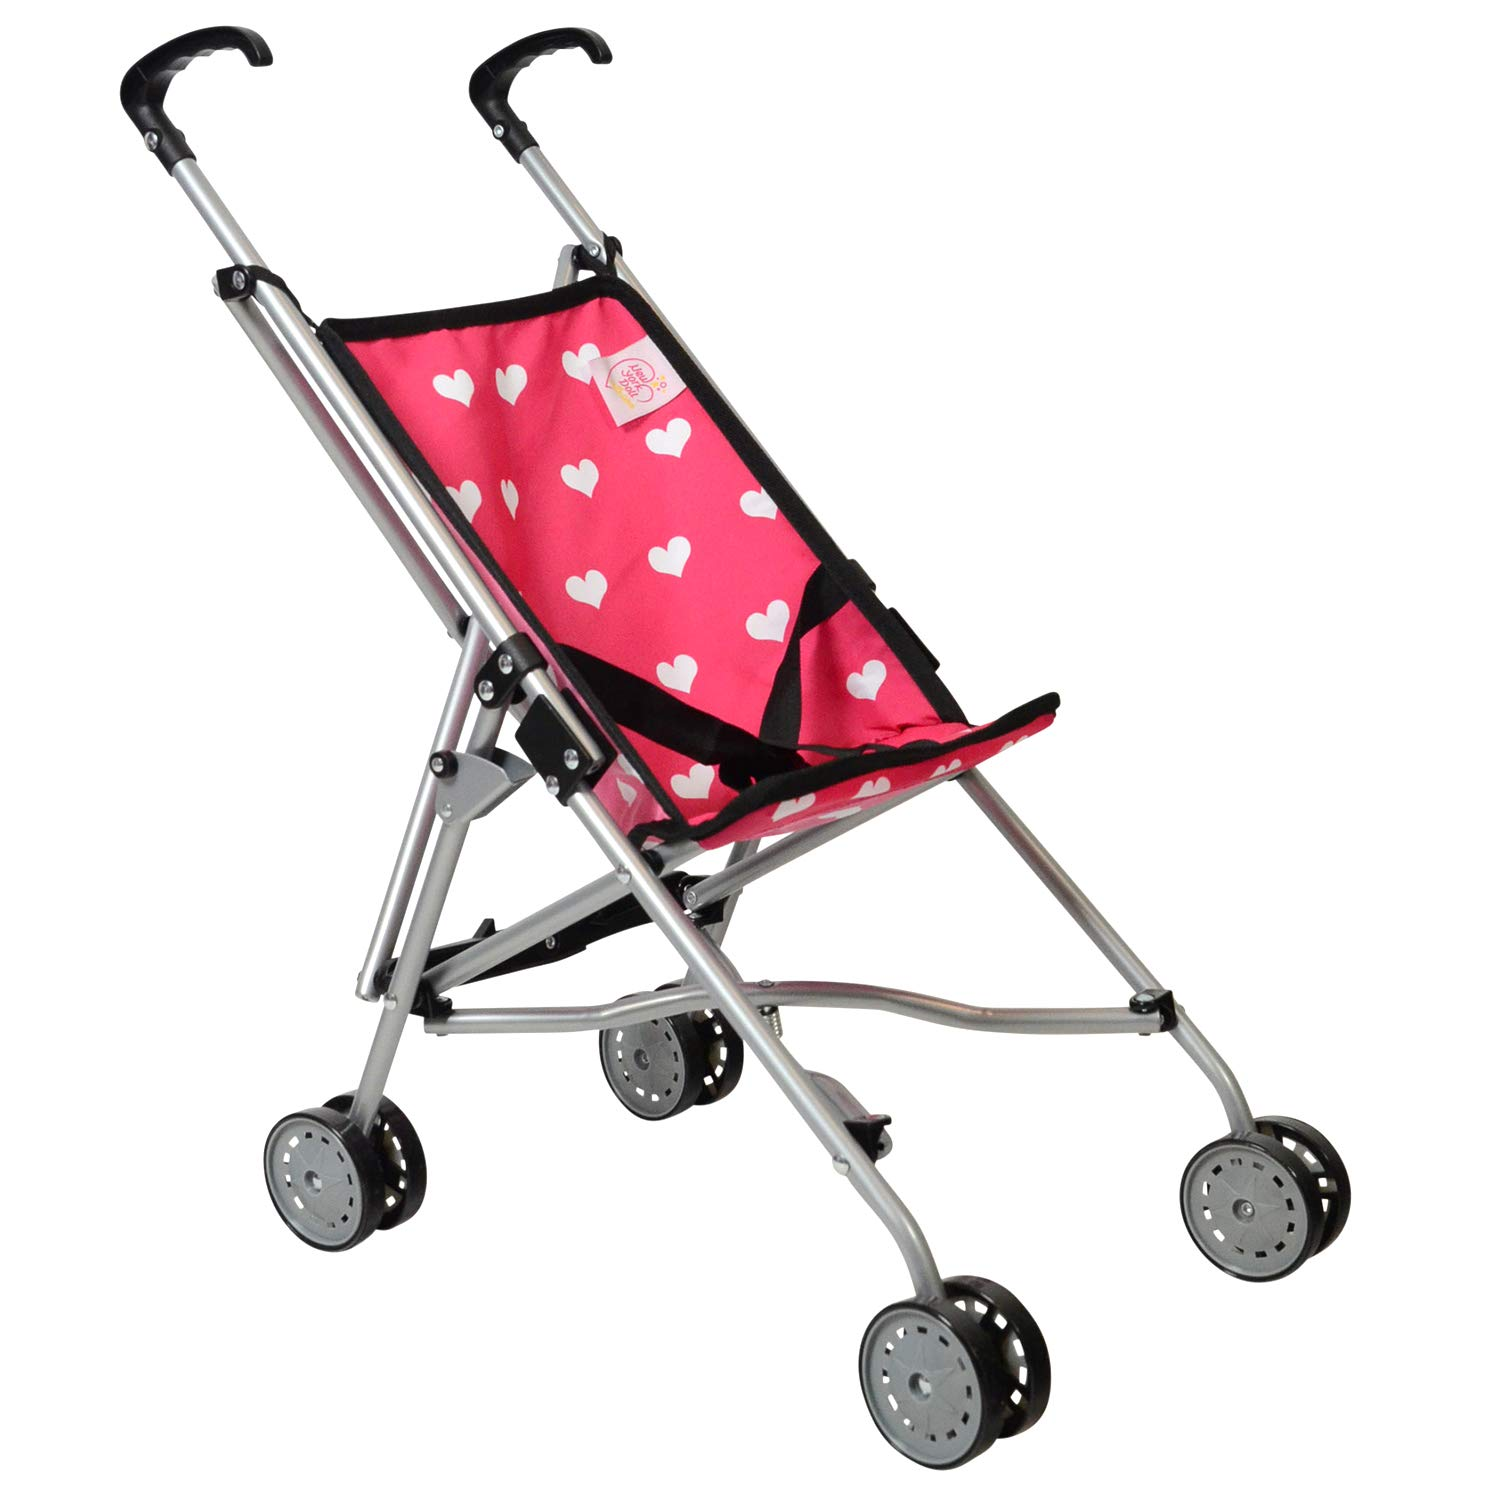 Hearts My First Doll Stroller for Kids - Super Cute Doll Stroller for Girls - Doll Stroller Folds for Storage - Great Gift for Toddlers by The New York Doll Collection